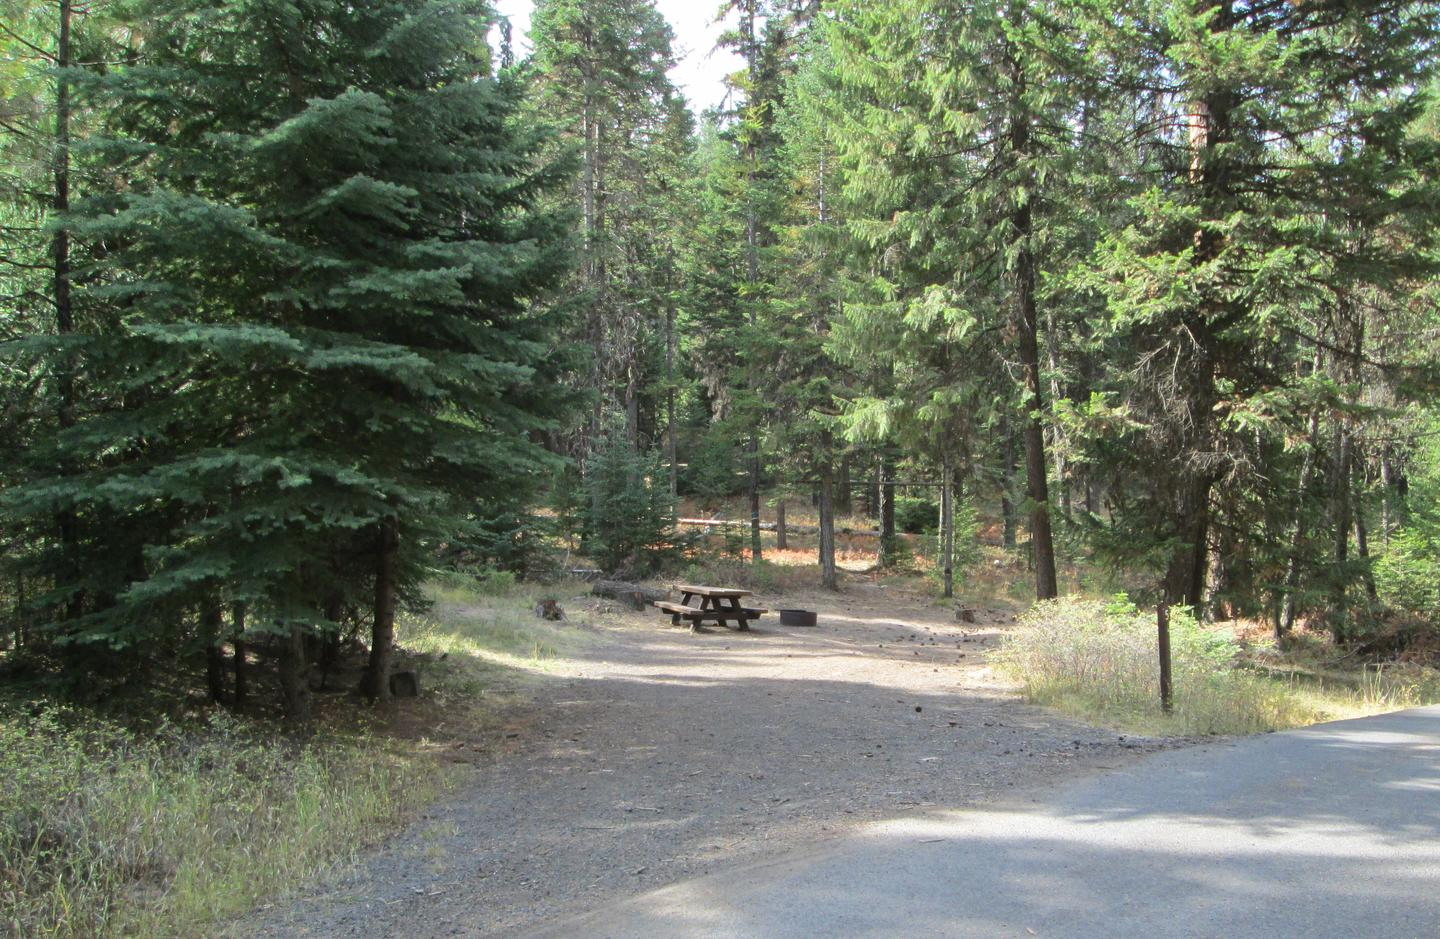 campsite parking area and entrance signBull Prairie Lake site #5